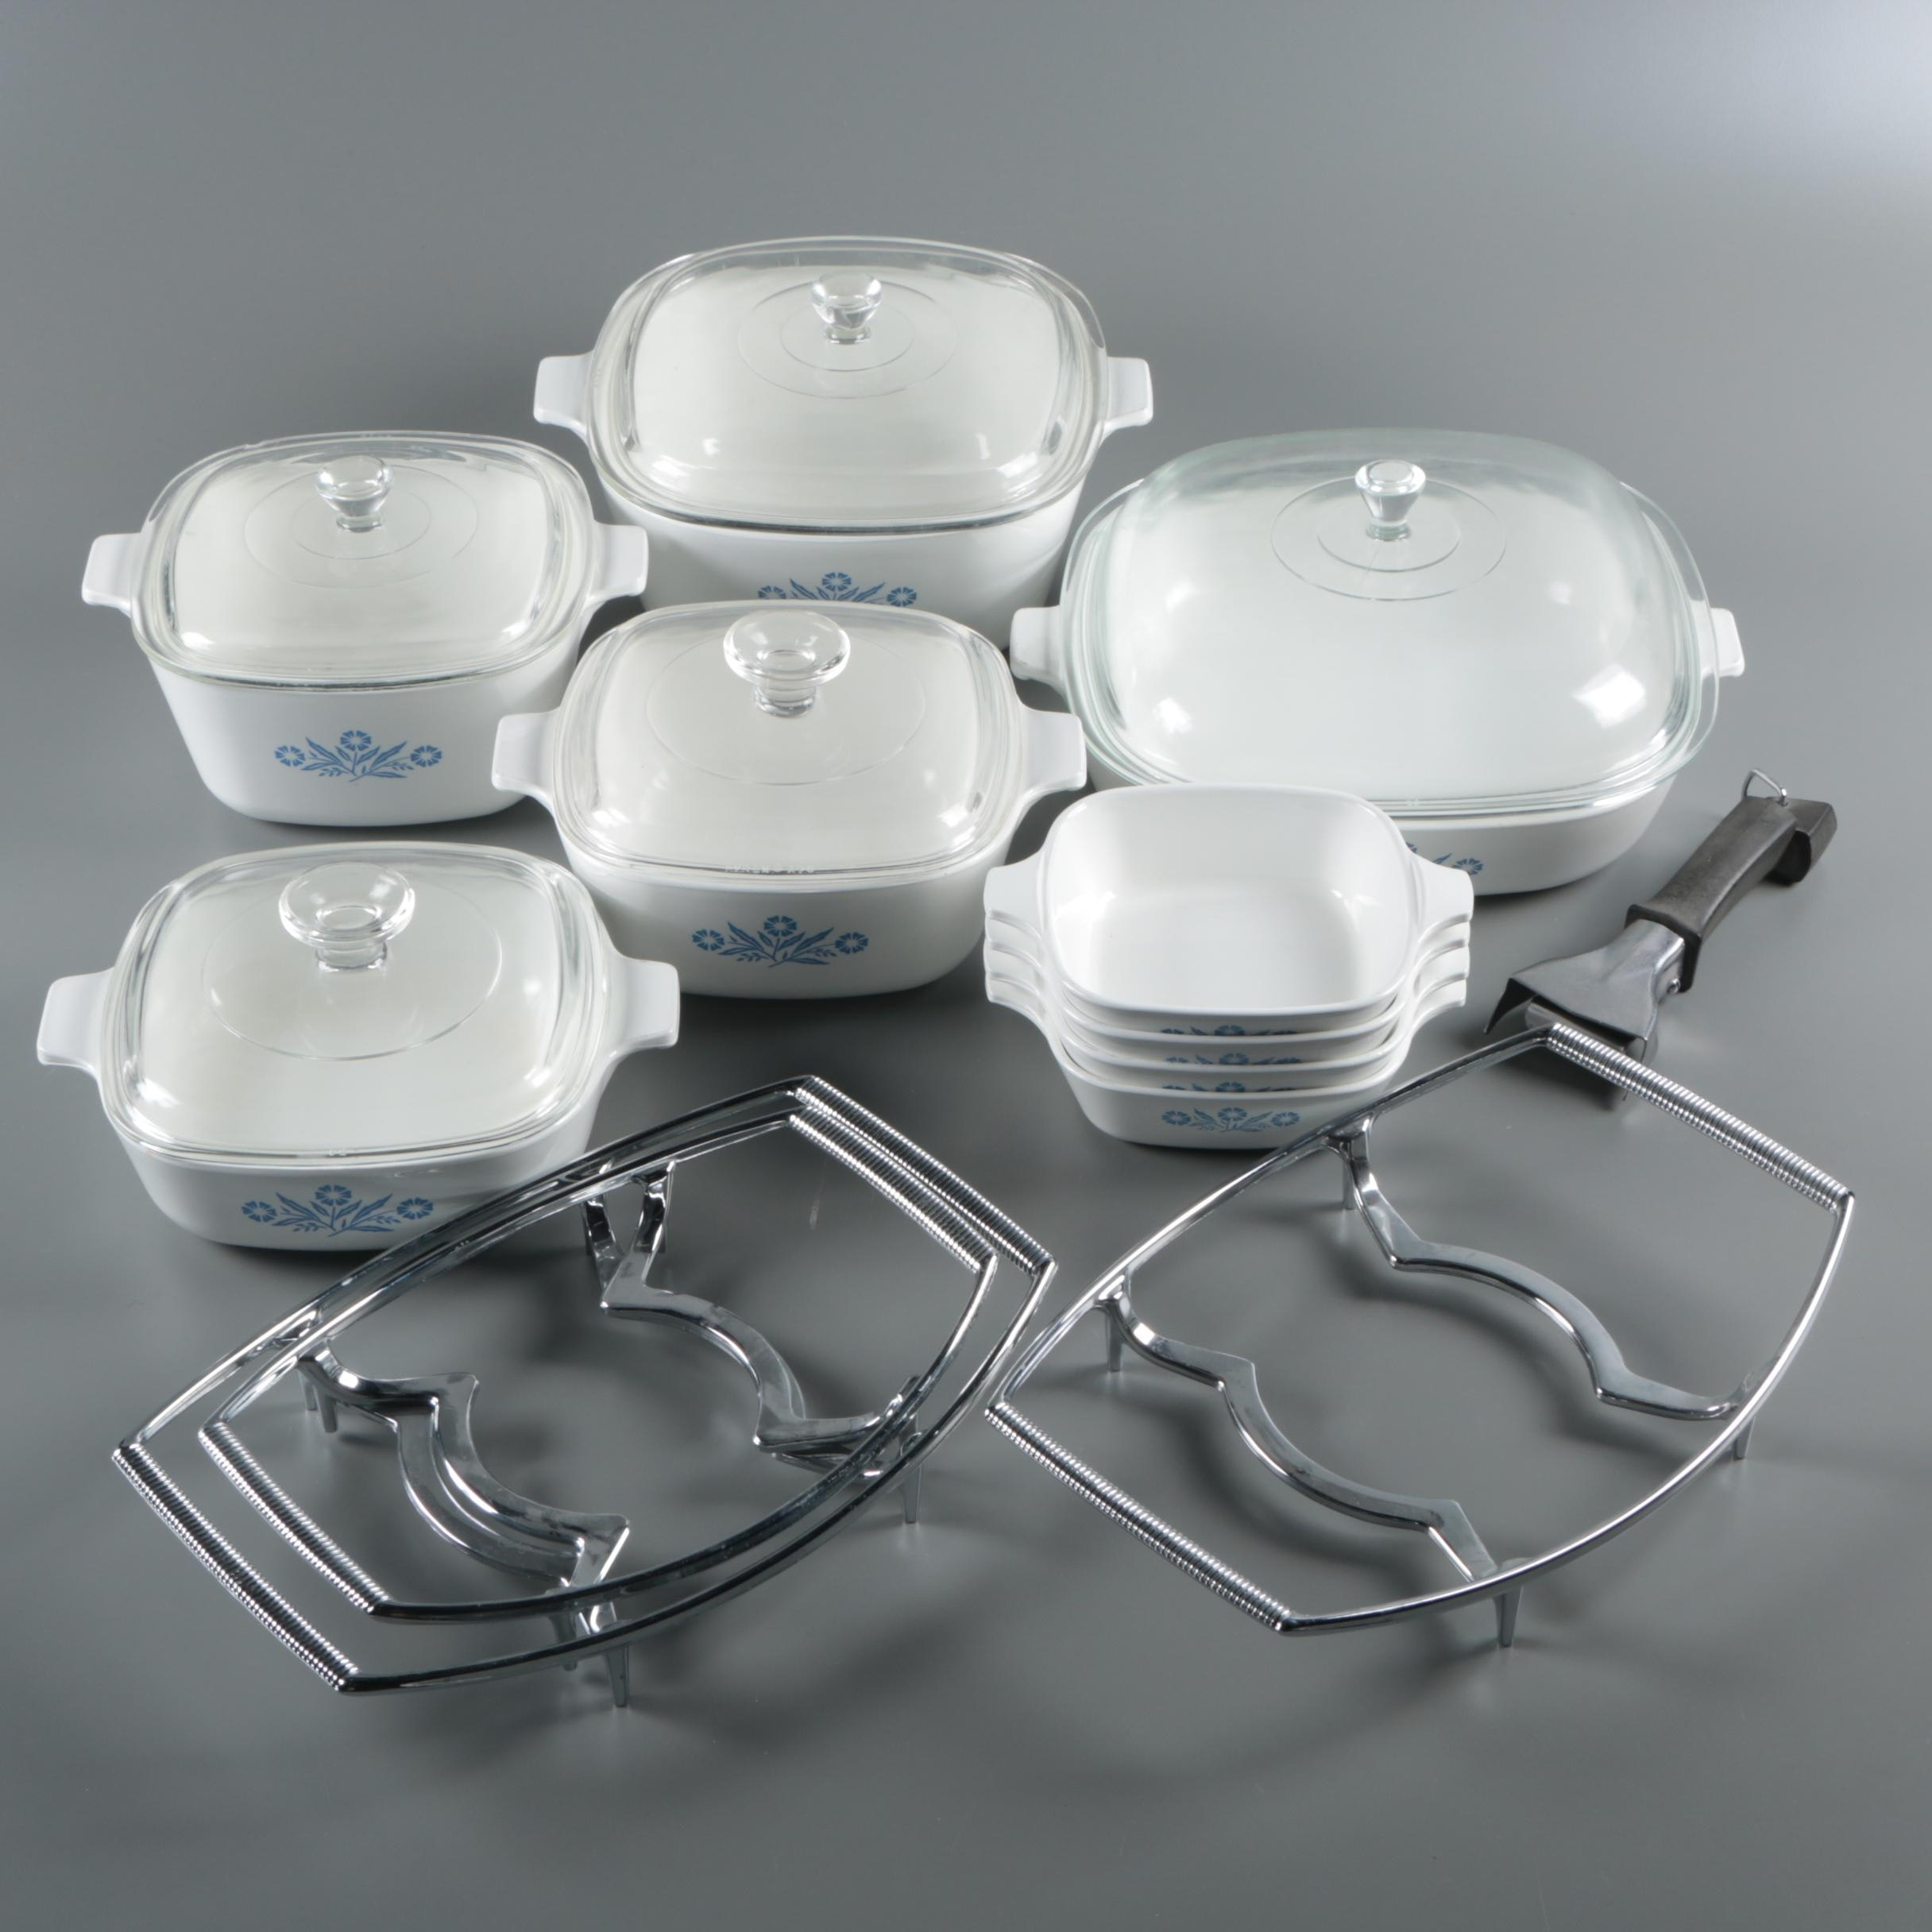 """Corning """"Cornflower Blue"""" Bakeware with Serving Cradles and Detachable Handle"""